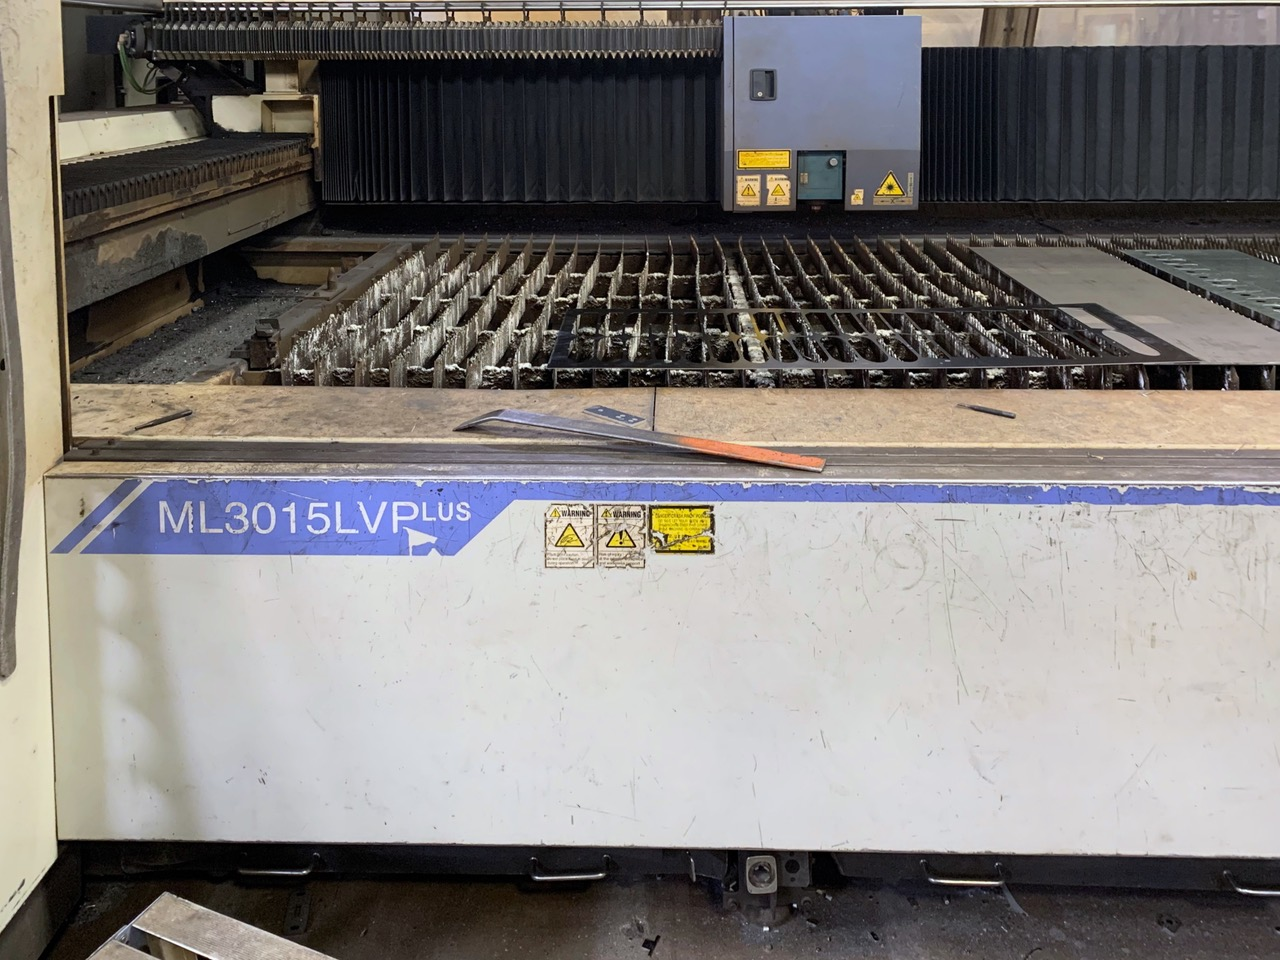 Mitsubishi ML3015 LVP 2006 4_Laser Cutting Machine